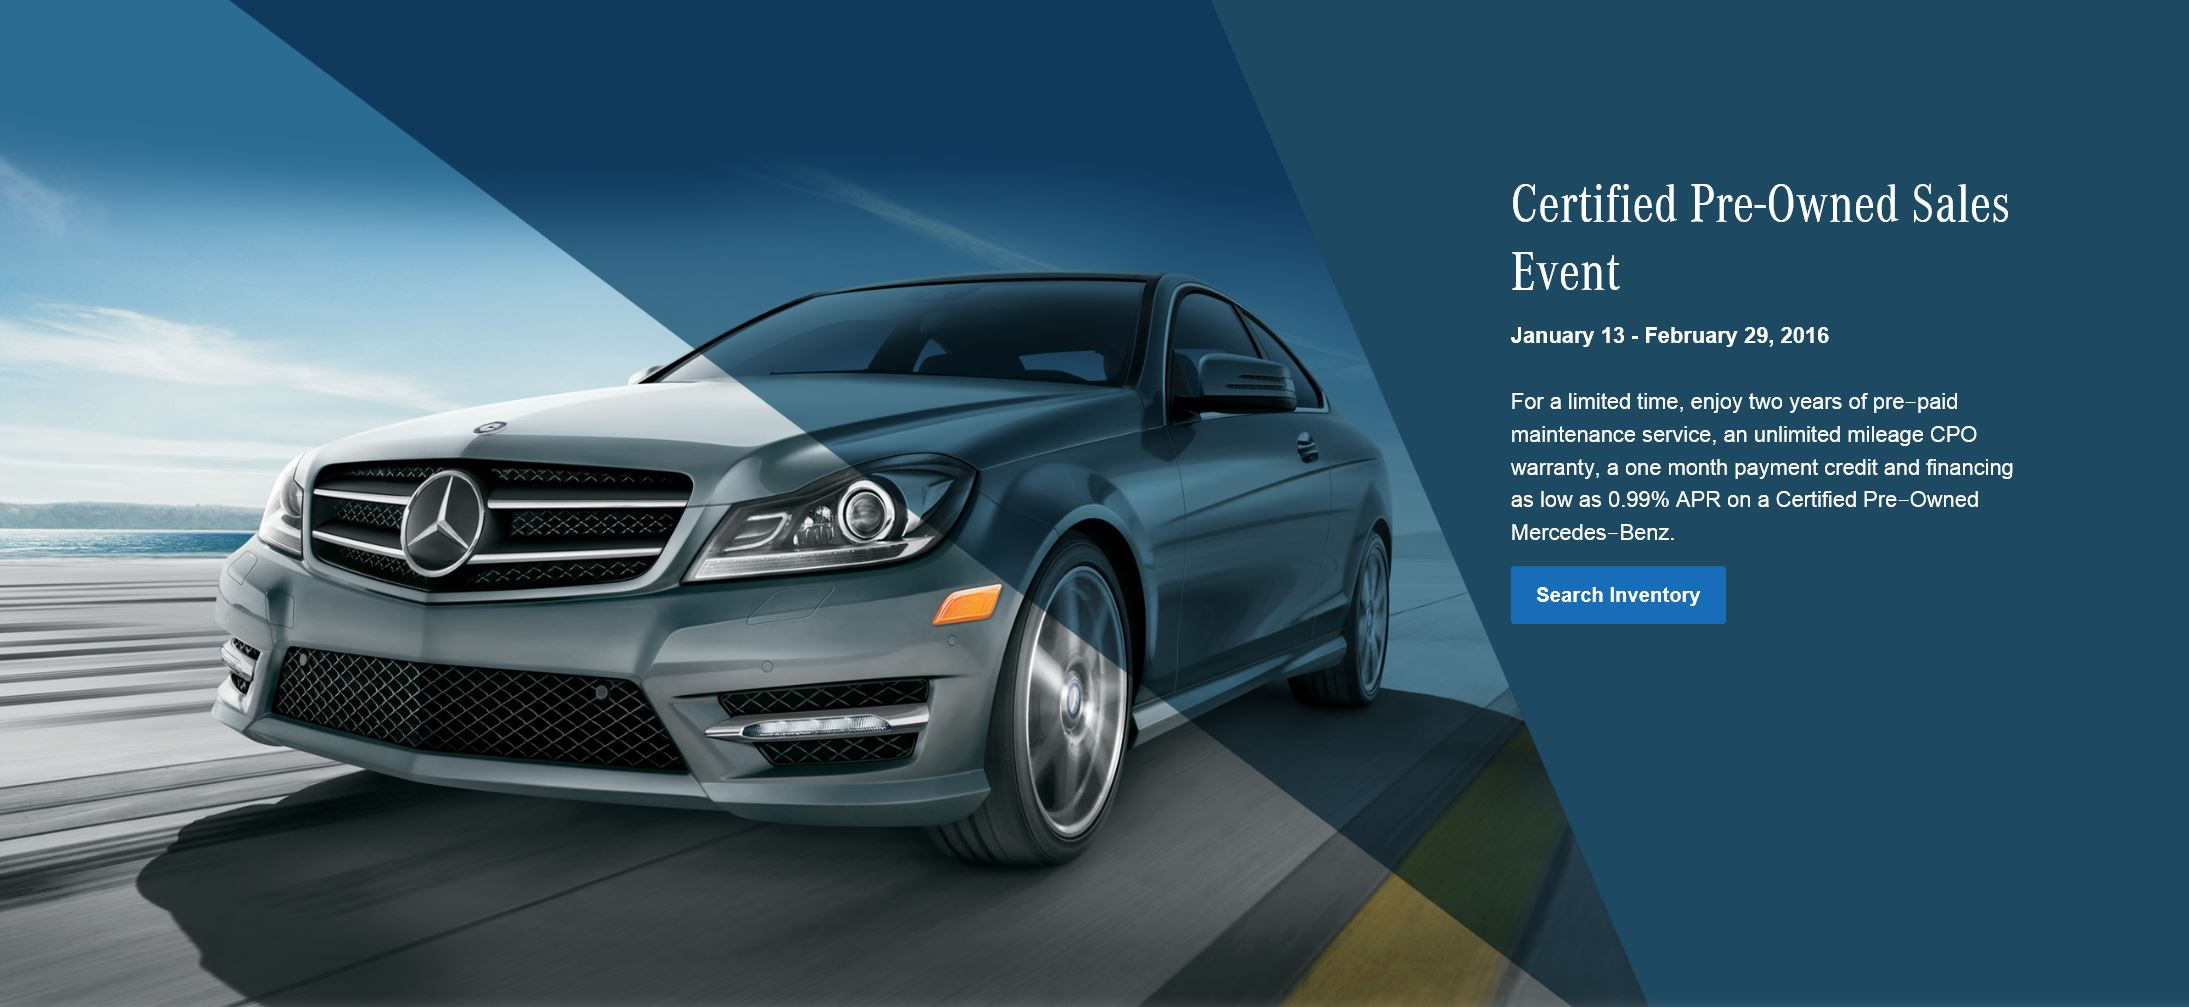 Mercedes benz of princeton mercedes benz certified pre for Mercedes benz certified pre owned sales event